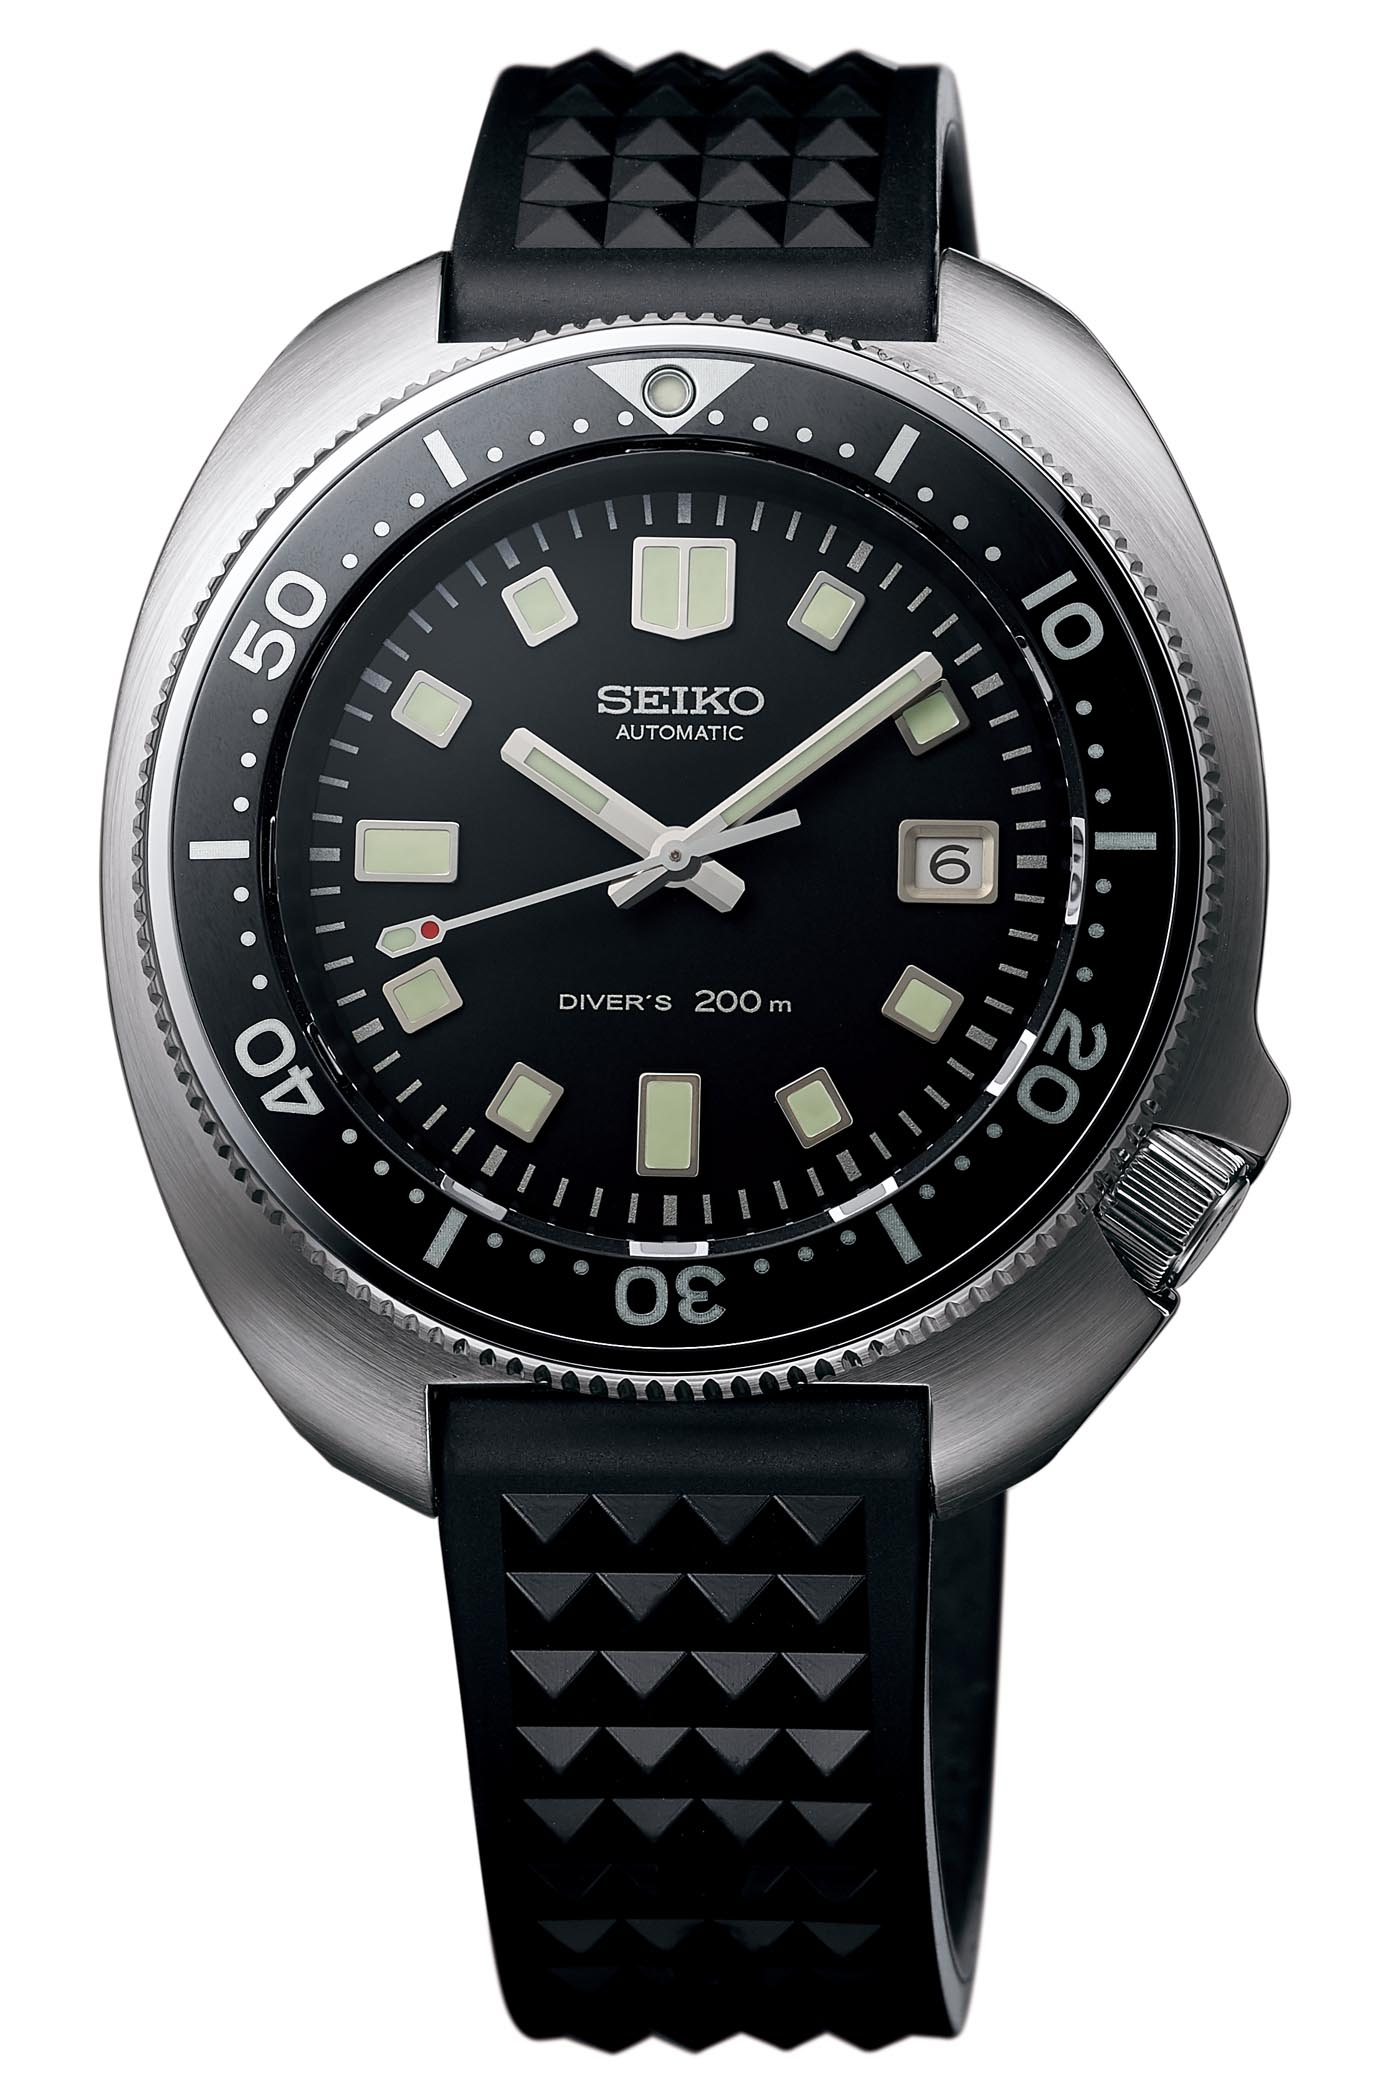 https://k8q7r7a2.stackpathcdn.com/wp-content/uploads/2019/03/Seiko-1970-Diver's-Re-Creation-Limited-Edition-SLA033-Baselworld-2019-4.jpg